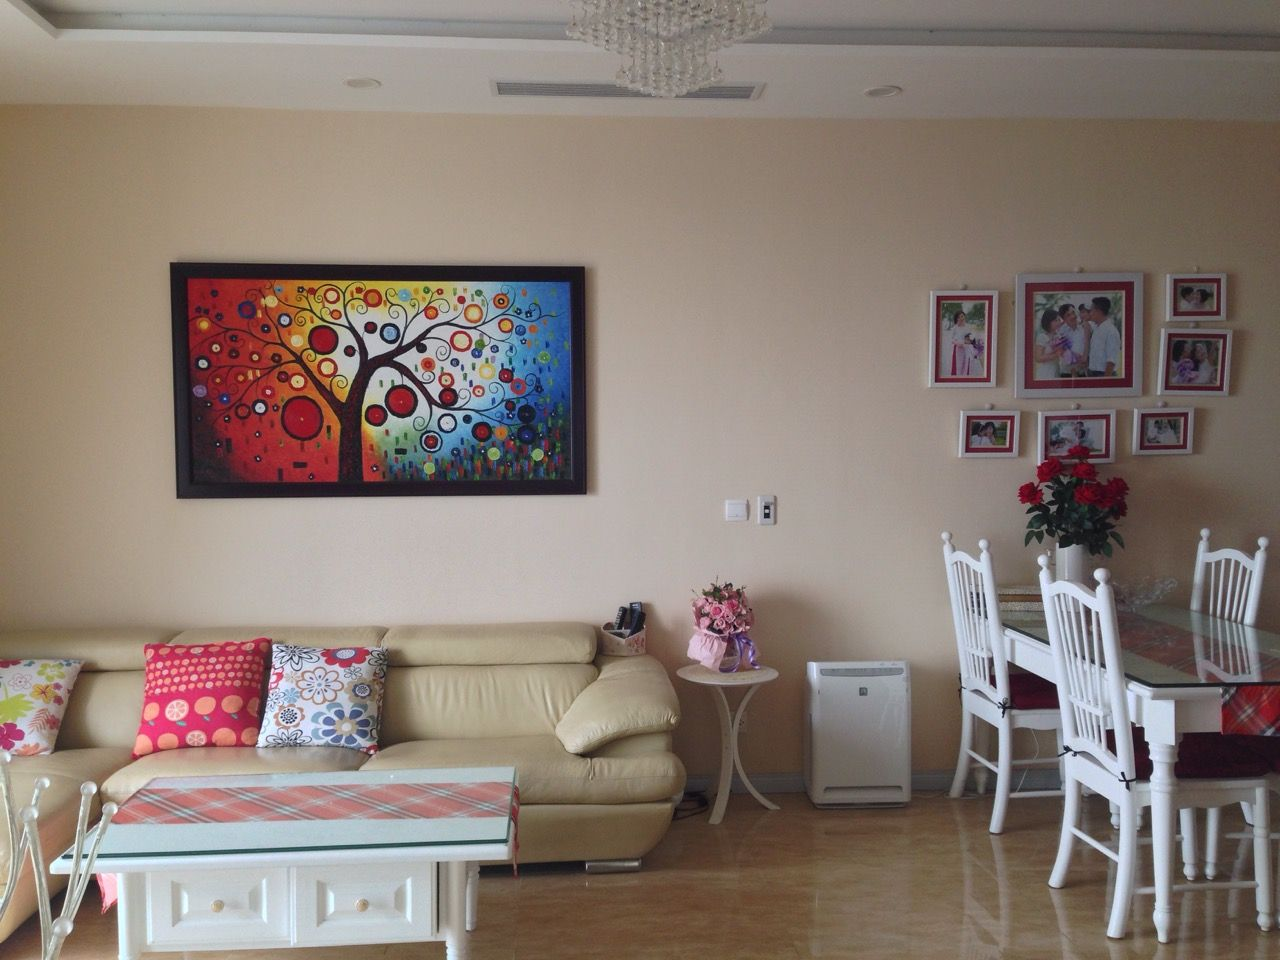 Furnished 3 bedrooms apartment for rent in T1 Vinhomes Times city, Minh Khai street.